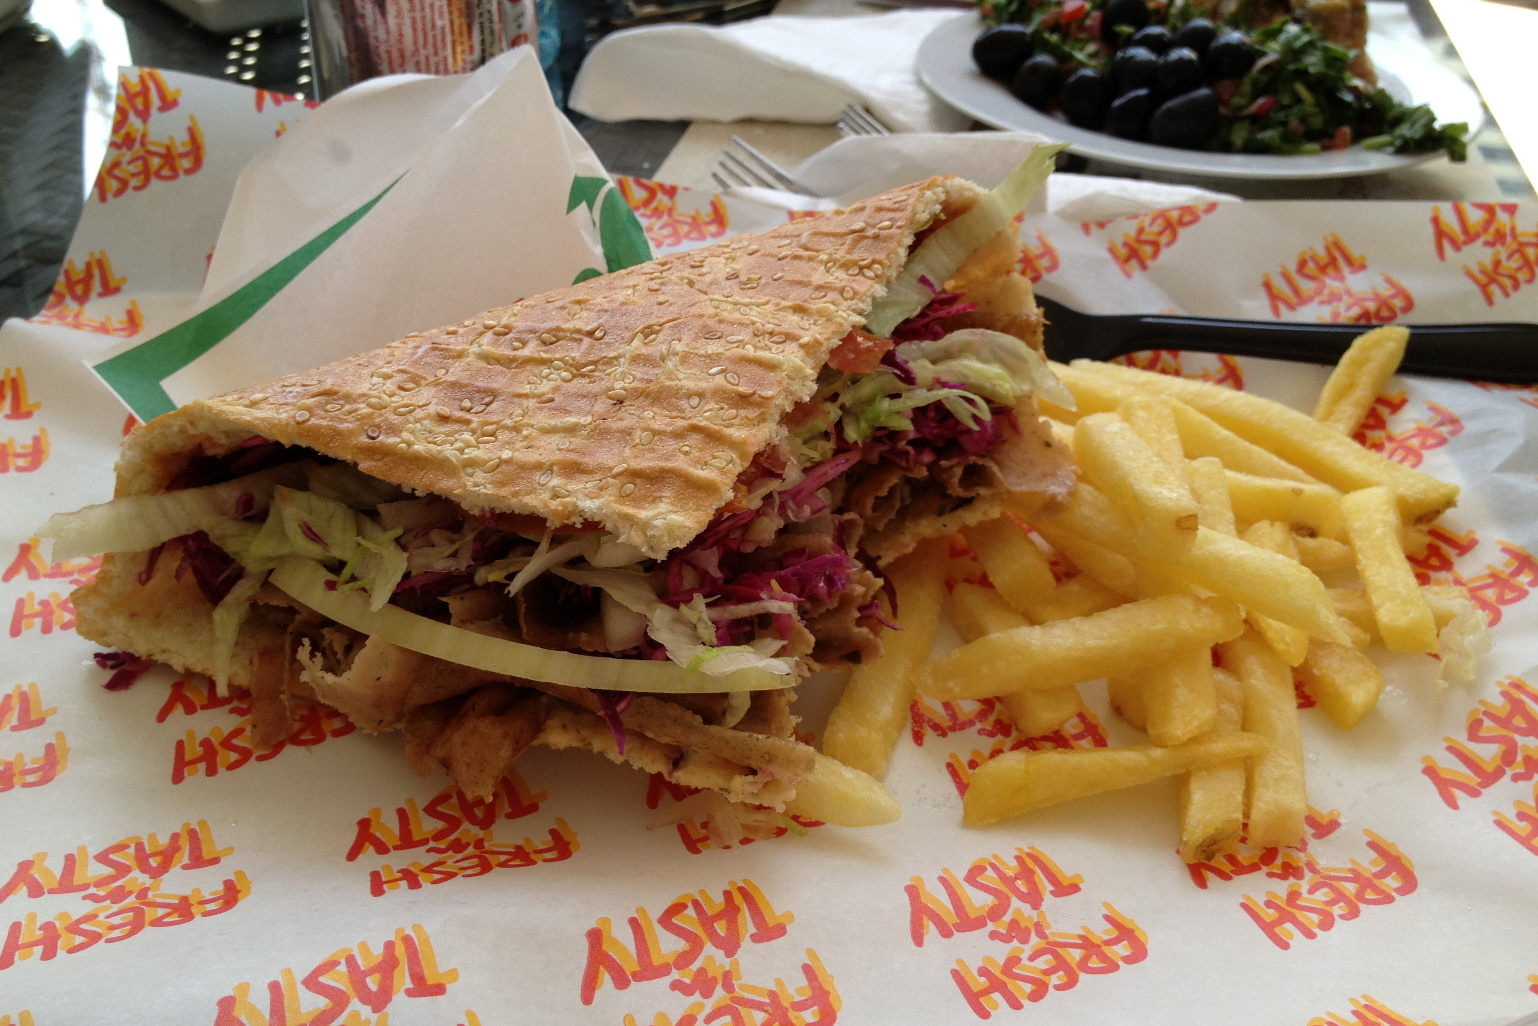 German Döner Kebab - The actual Döner